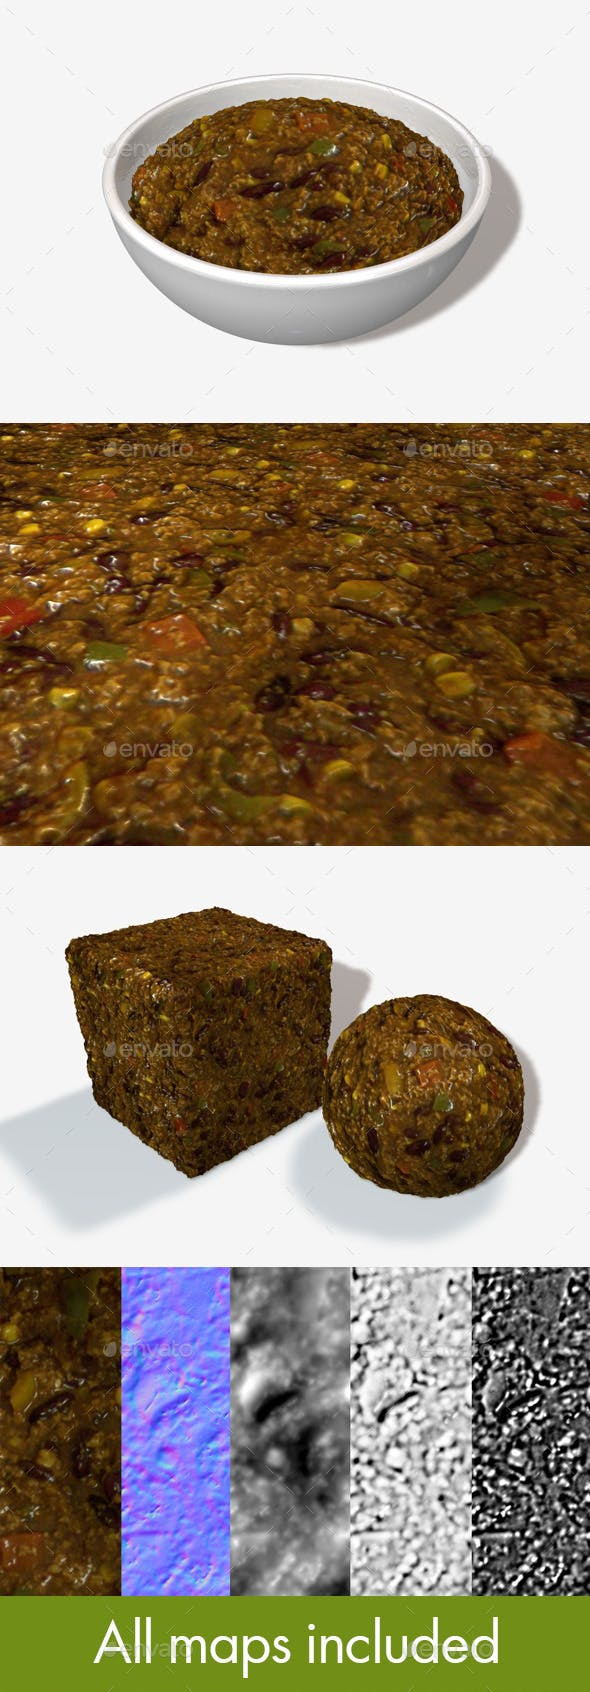 Chili Seamless Texture - 3DOcean Item for Sale